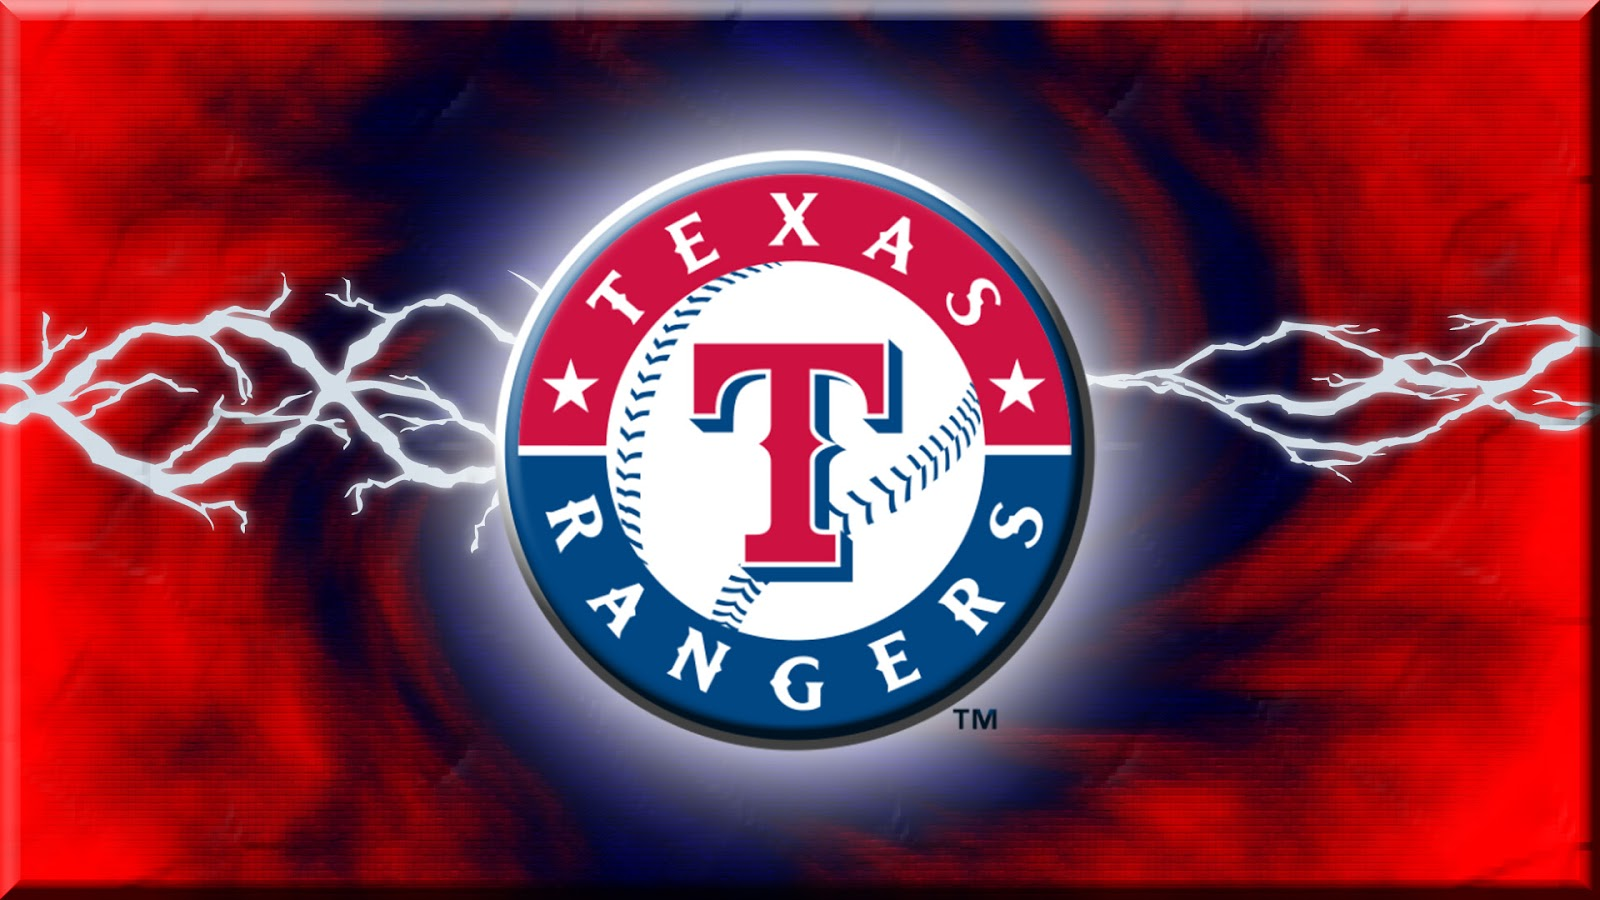 The Texas Rangers Net Worth